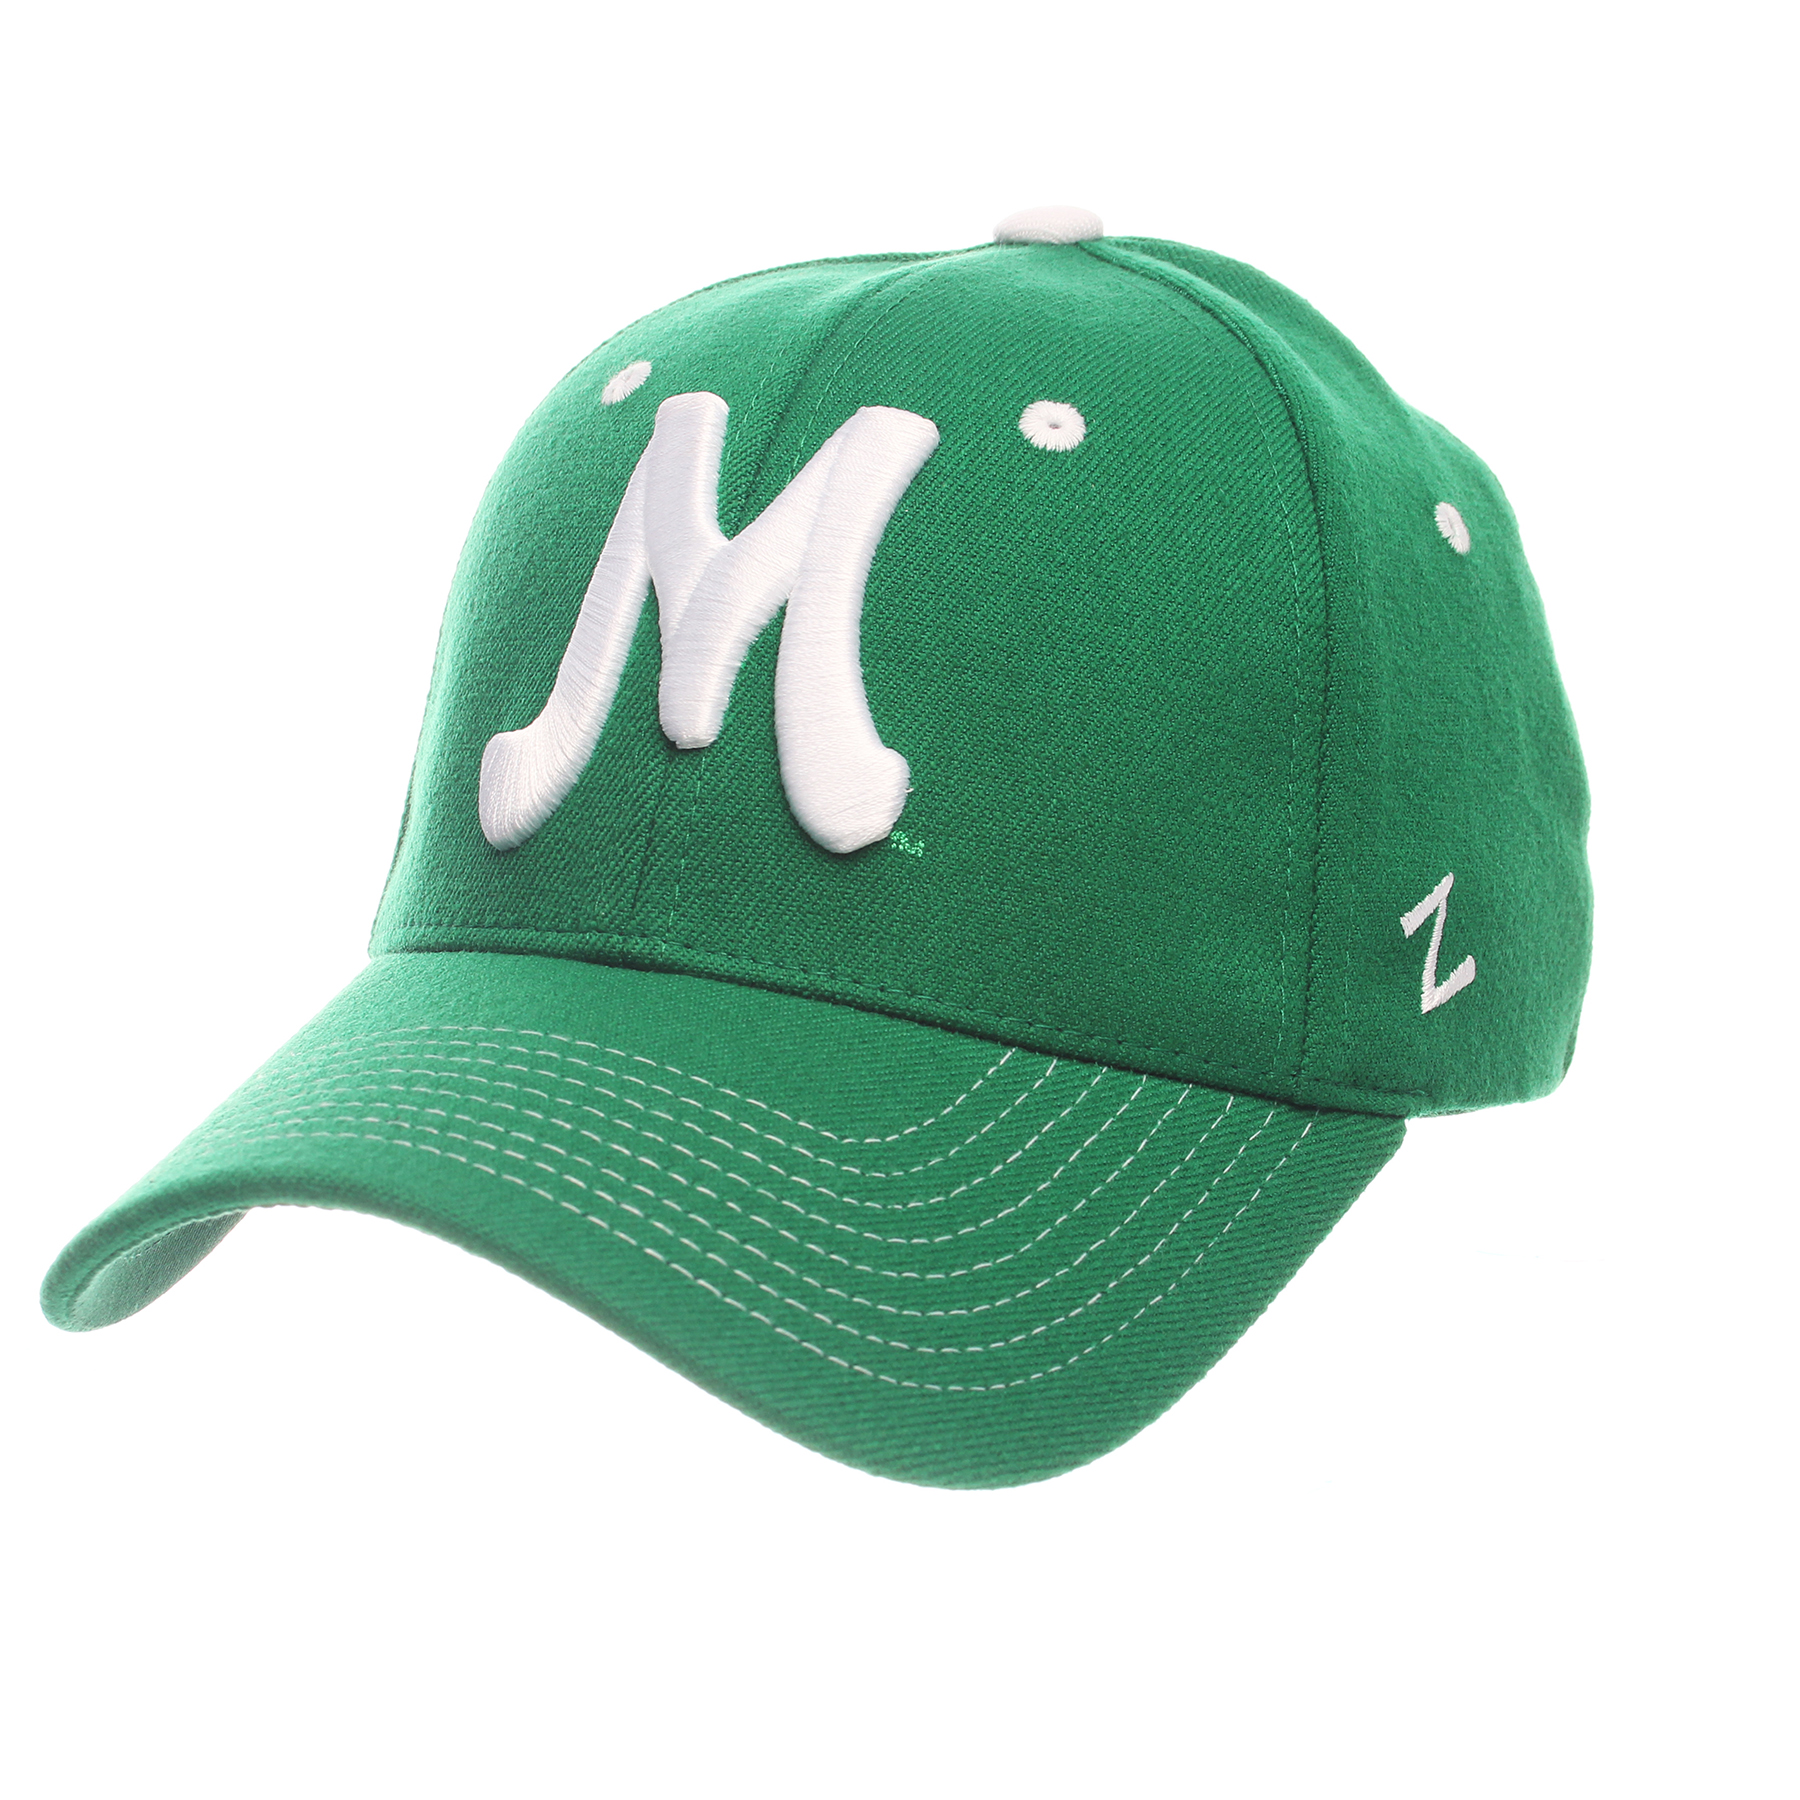 Retro M Fitted Hat <BR> 27710 <BR> $21.99